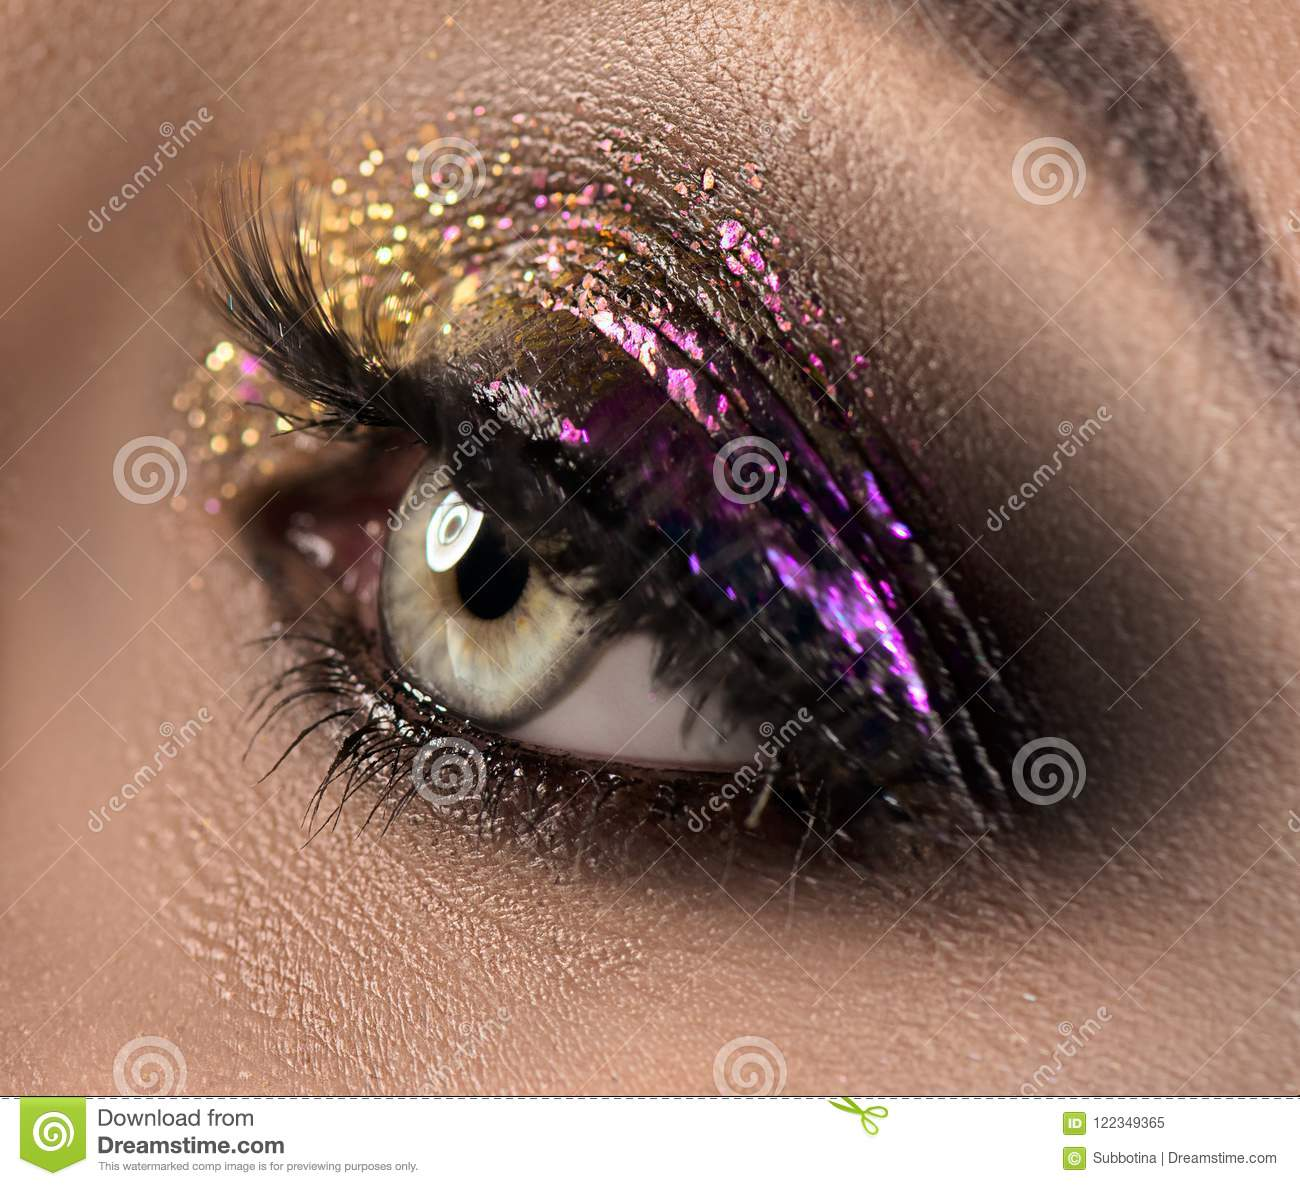 Beautiful Eye Makeup With Colorful Sparks Beauty Bright Fashion